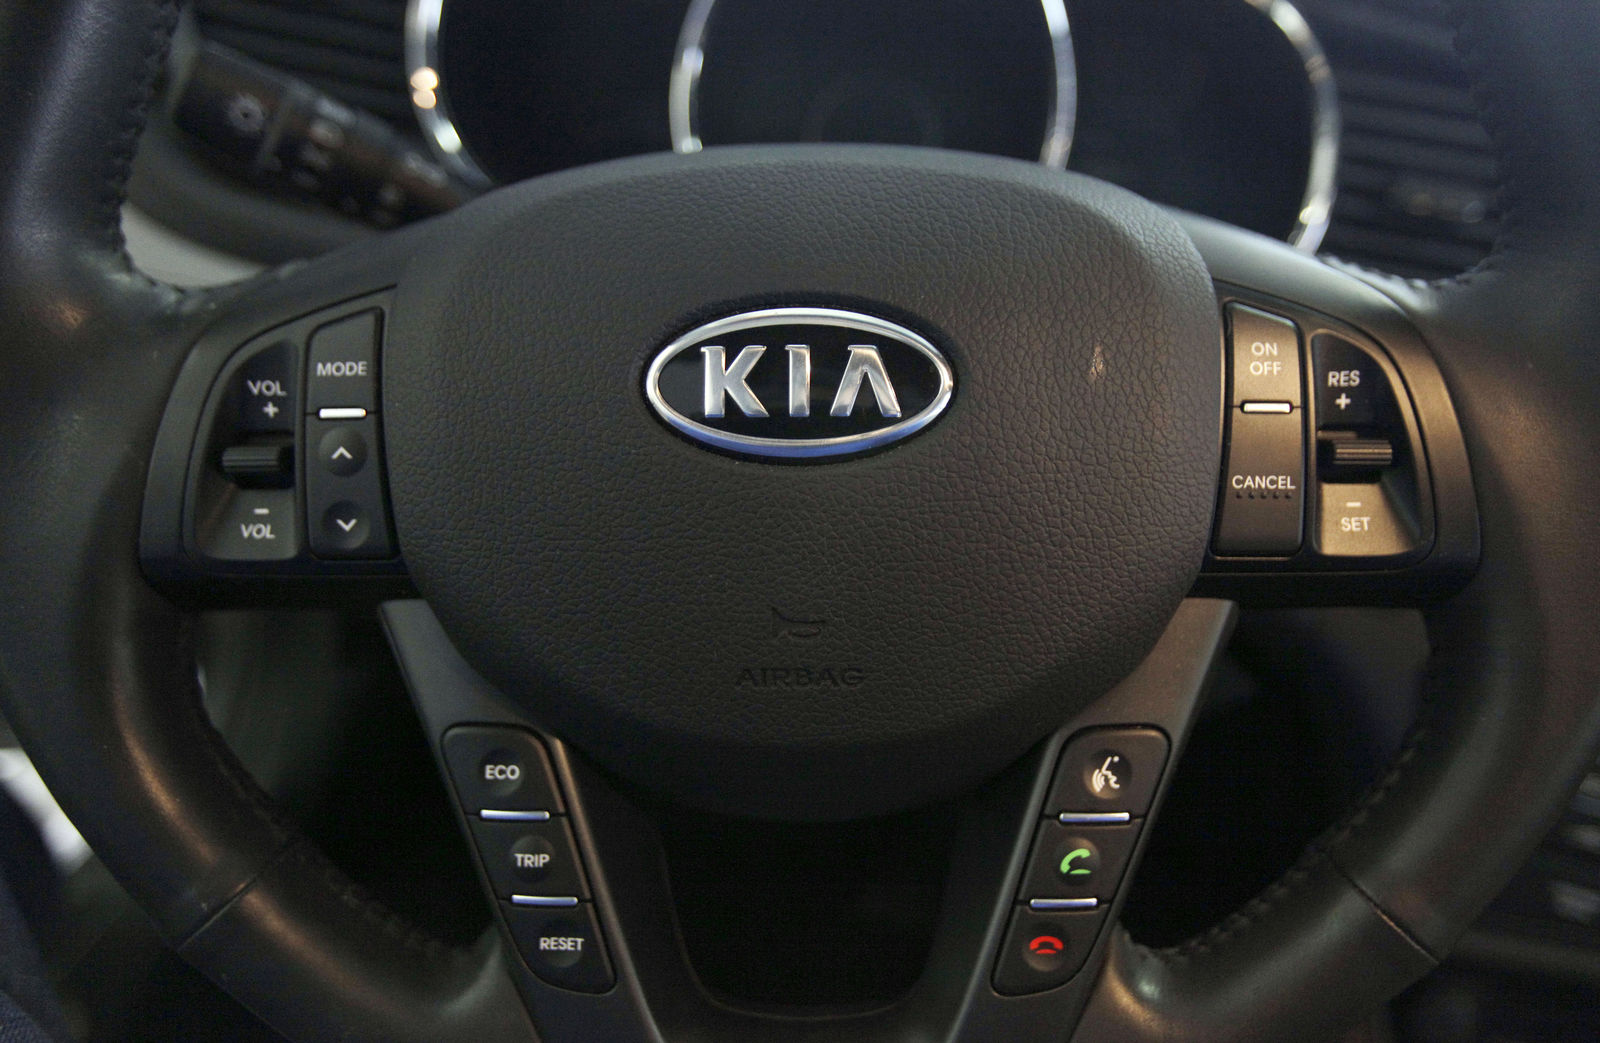 Kia is joining its affiliate Hyundai in recalling thousands of vehicles in the U.S. because water can get into a brake computer, cause an electrical short and possibly a fire. (AP Photo/Nam Y. Huh, File)